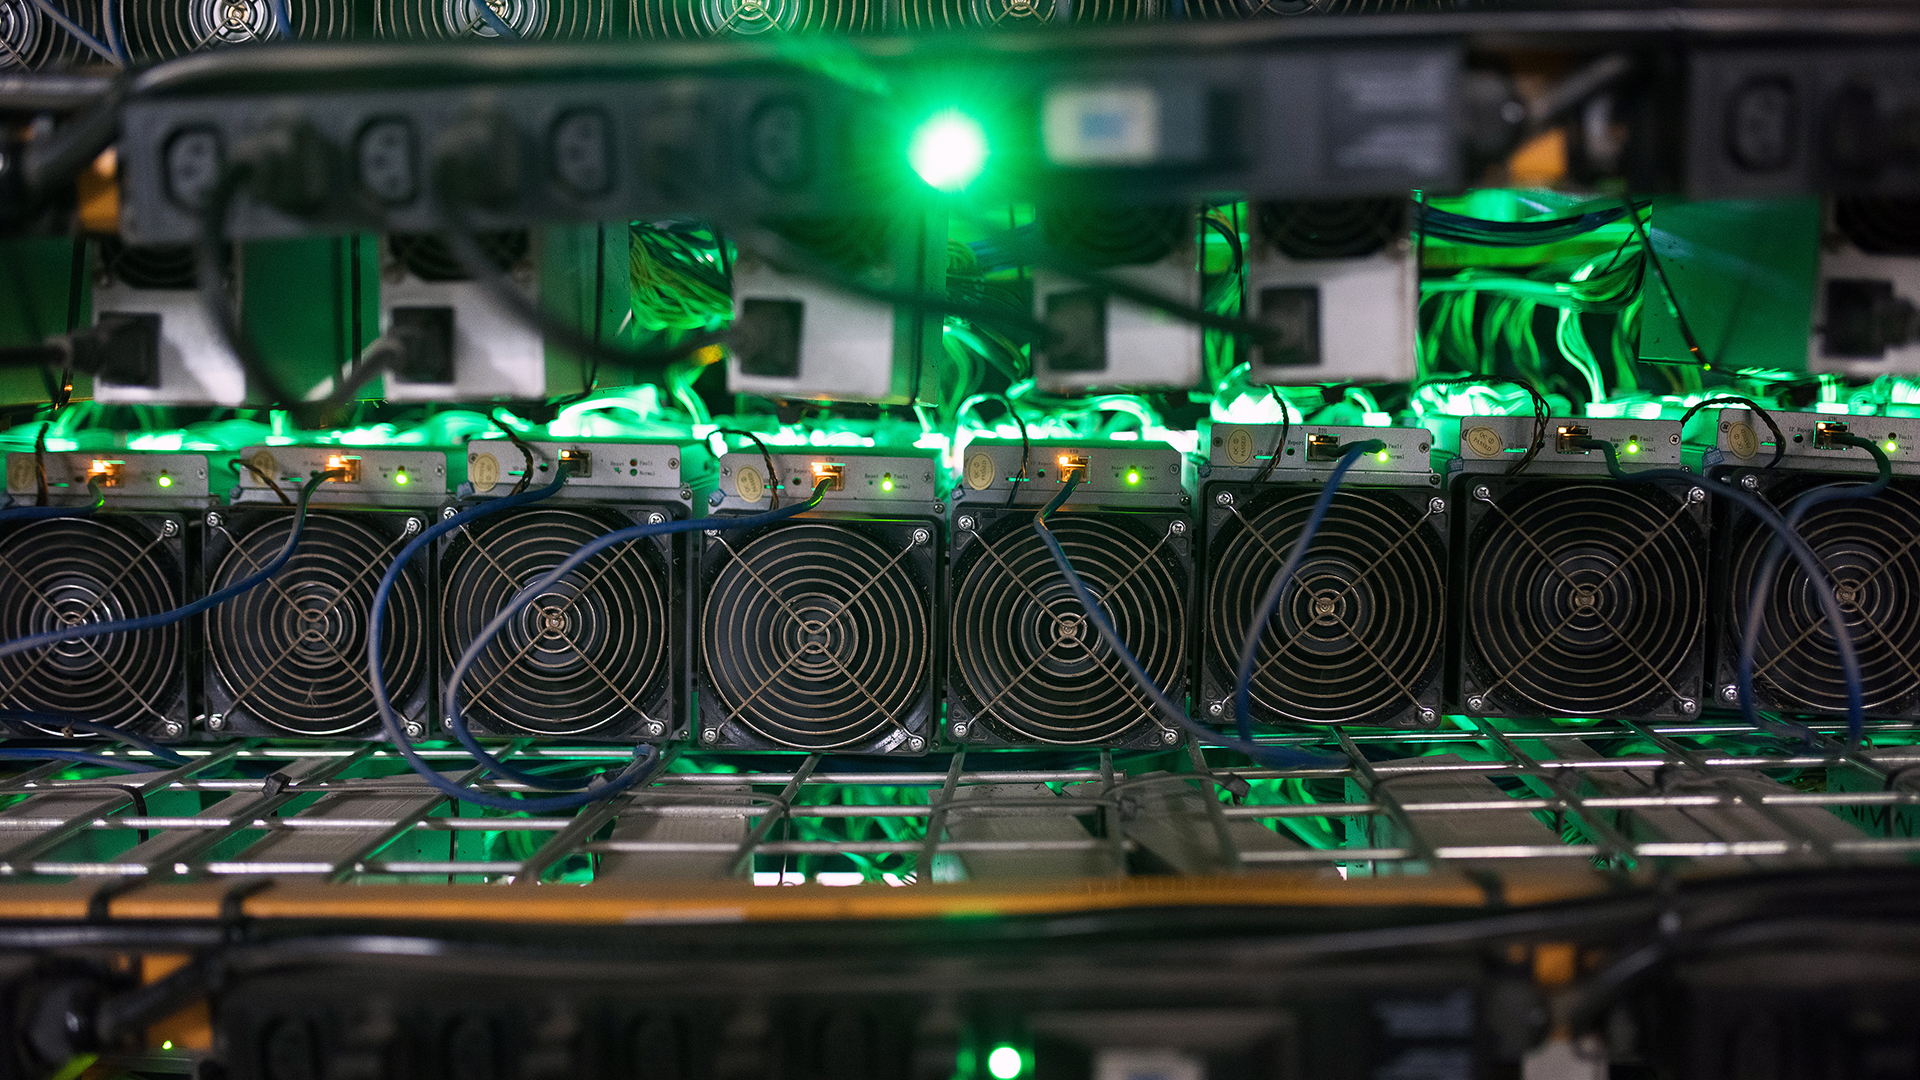 Bitcoin mining company boasts $30 million spend on Nvidia CMP GPUs